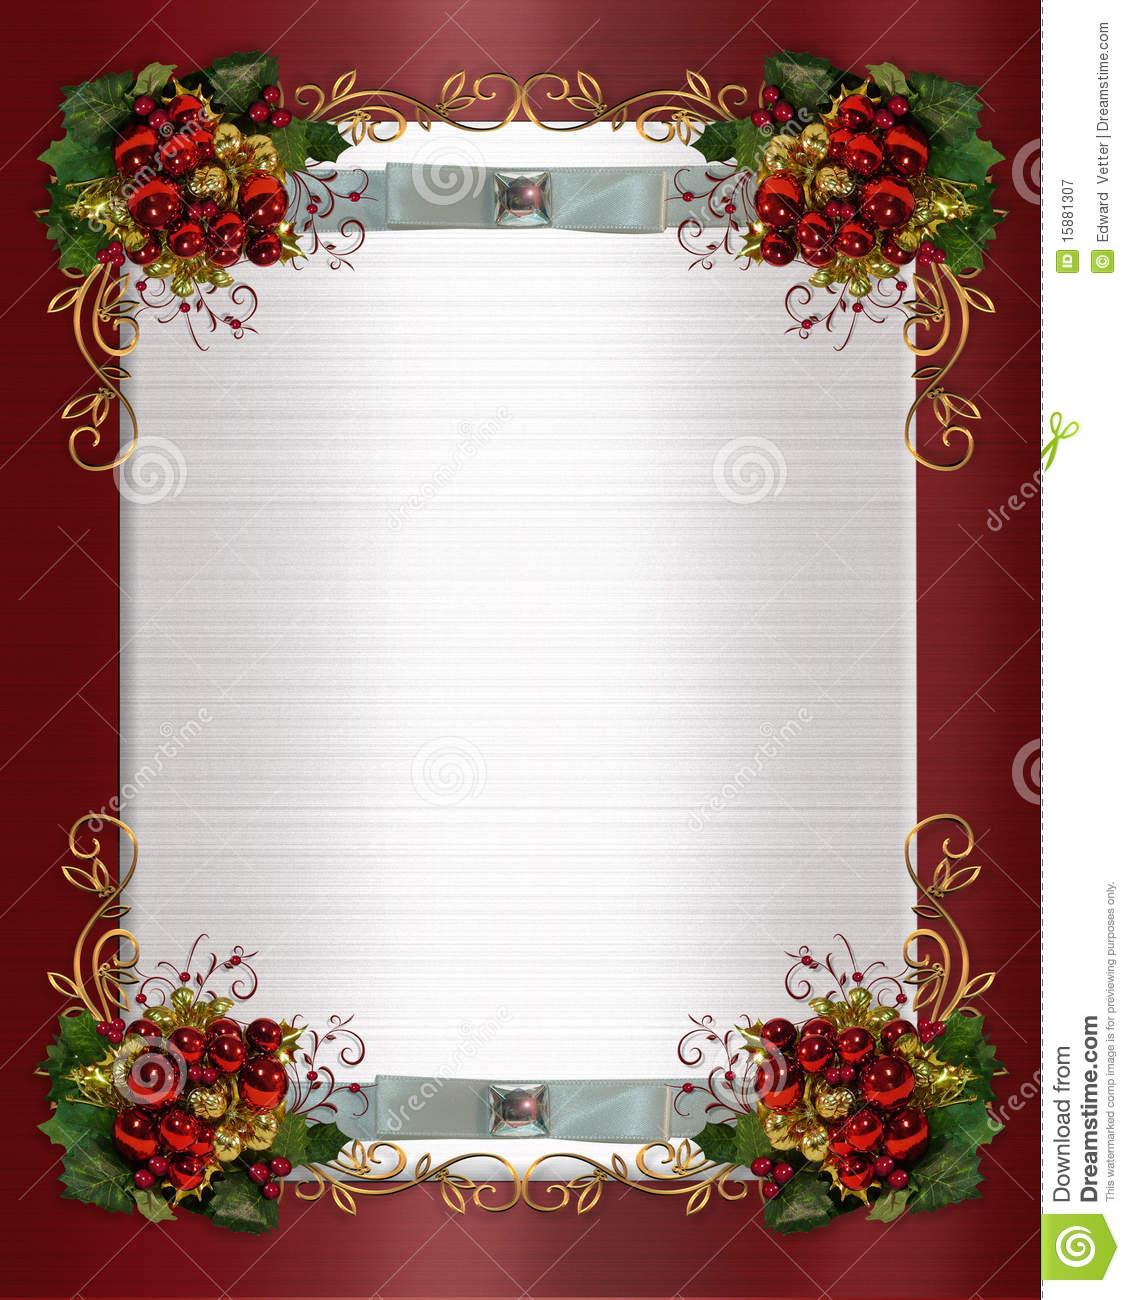 Christmas Or Winter Wedding Border Stock Illustration Illustration - Wedding invitation templates: winter wedding invitation templates free